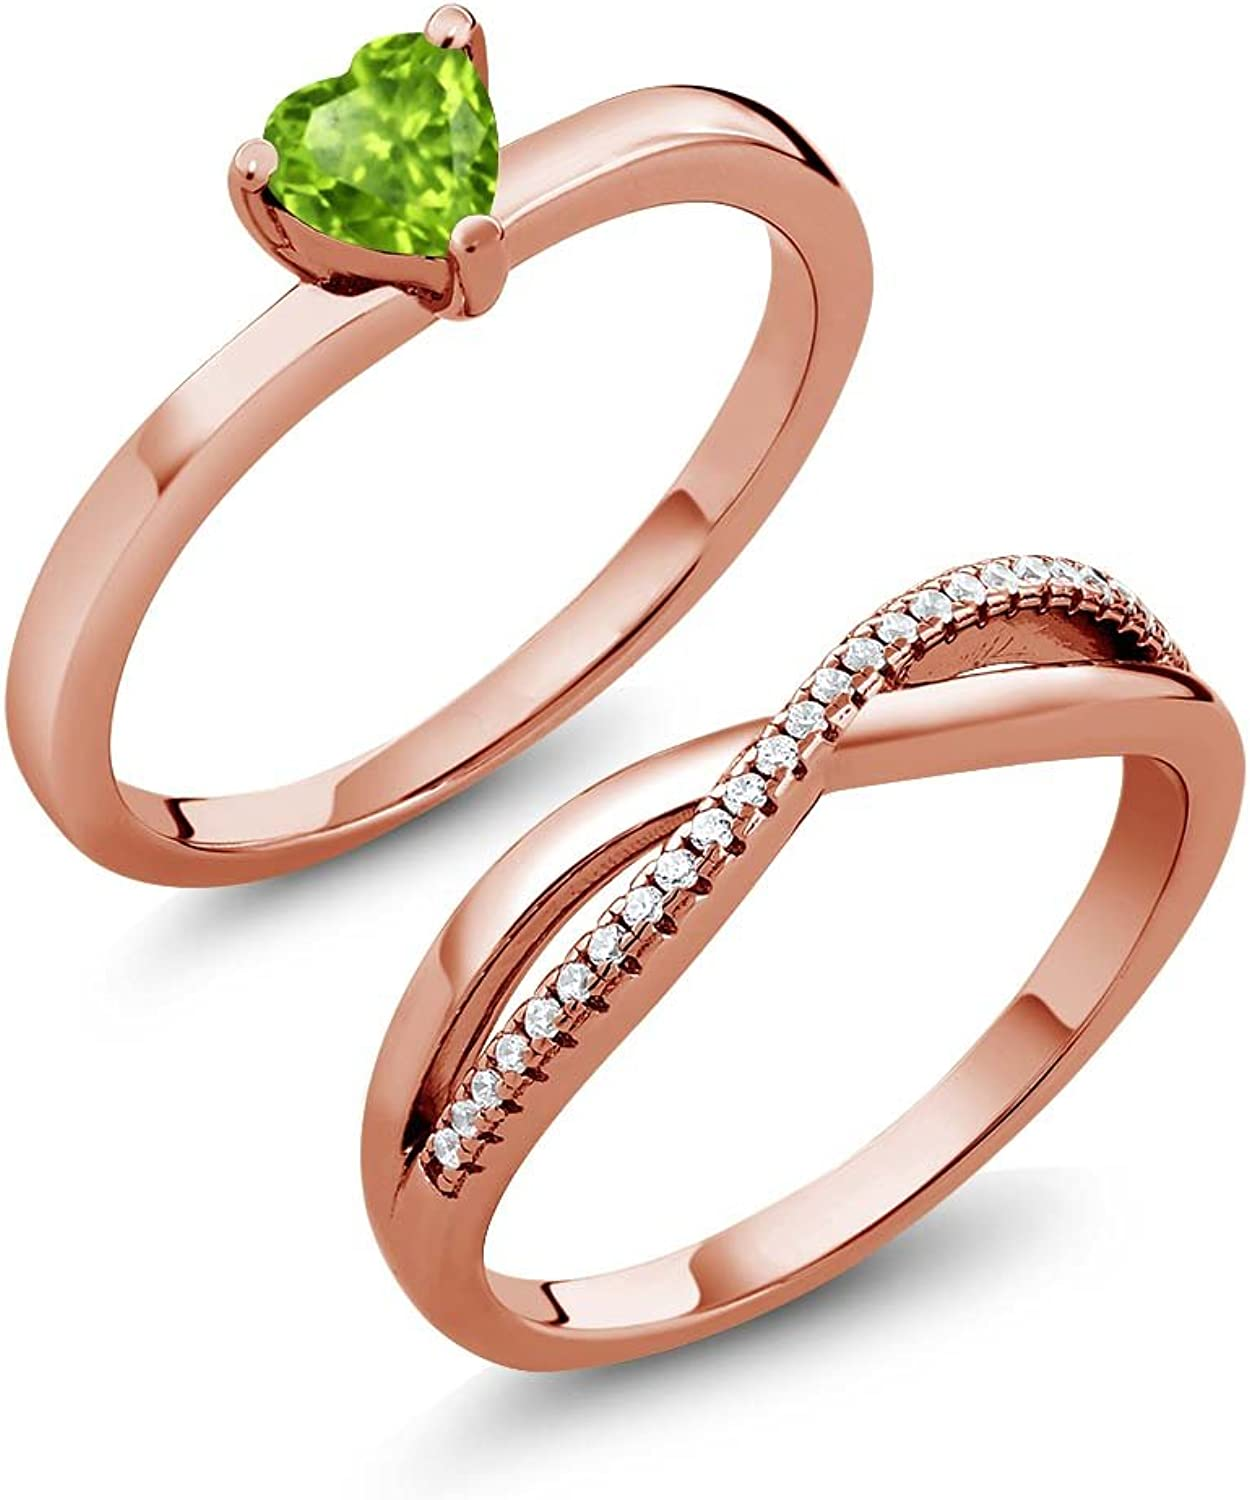 0.80 Ct Green Peridot 18K pink gold Plated Silver Engagement Wedding Ring Set